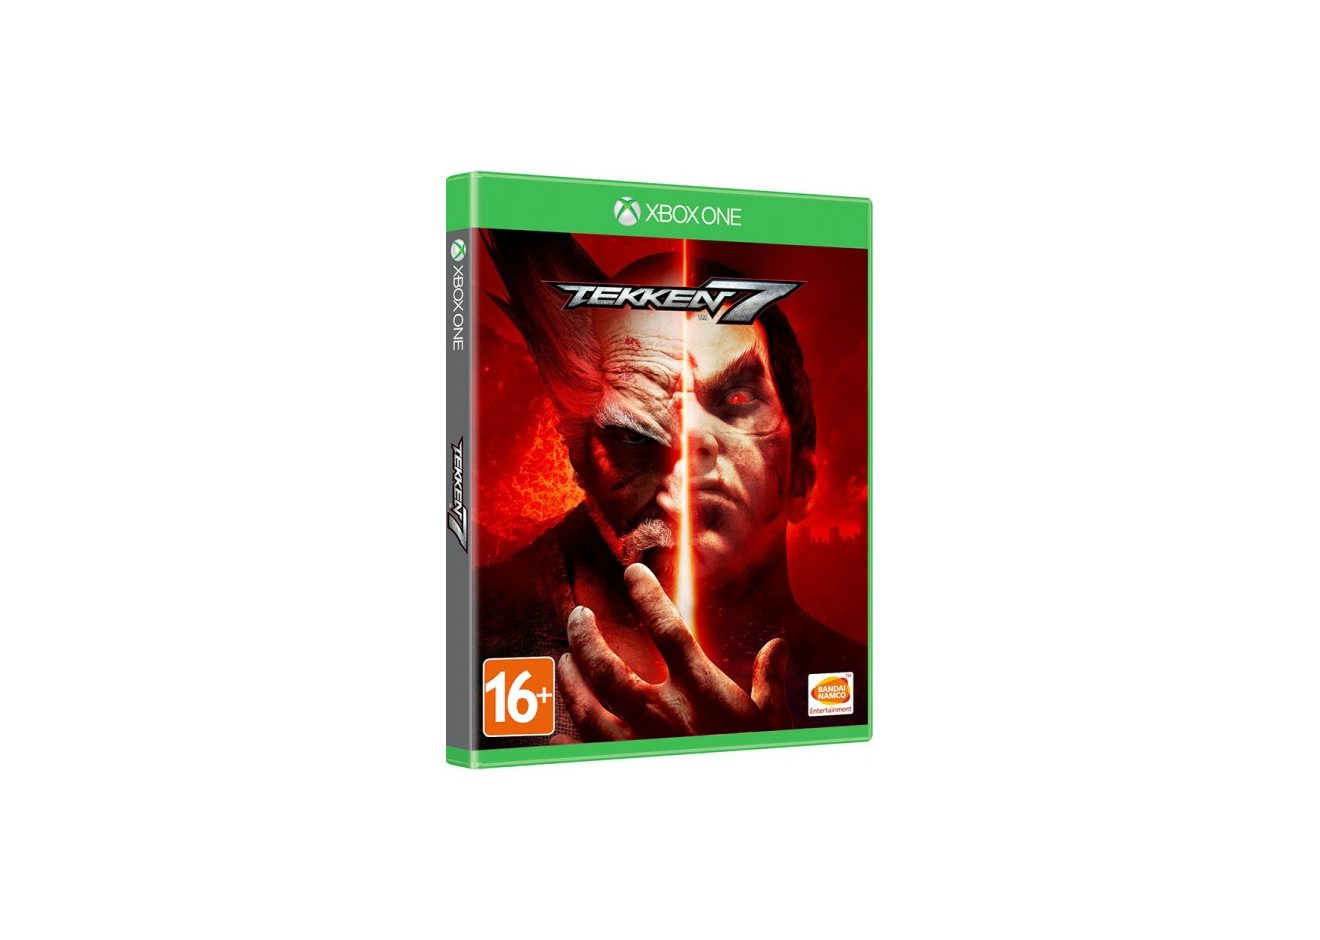 Xbox One Tekken 7 Xbox One